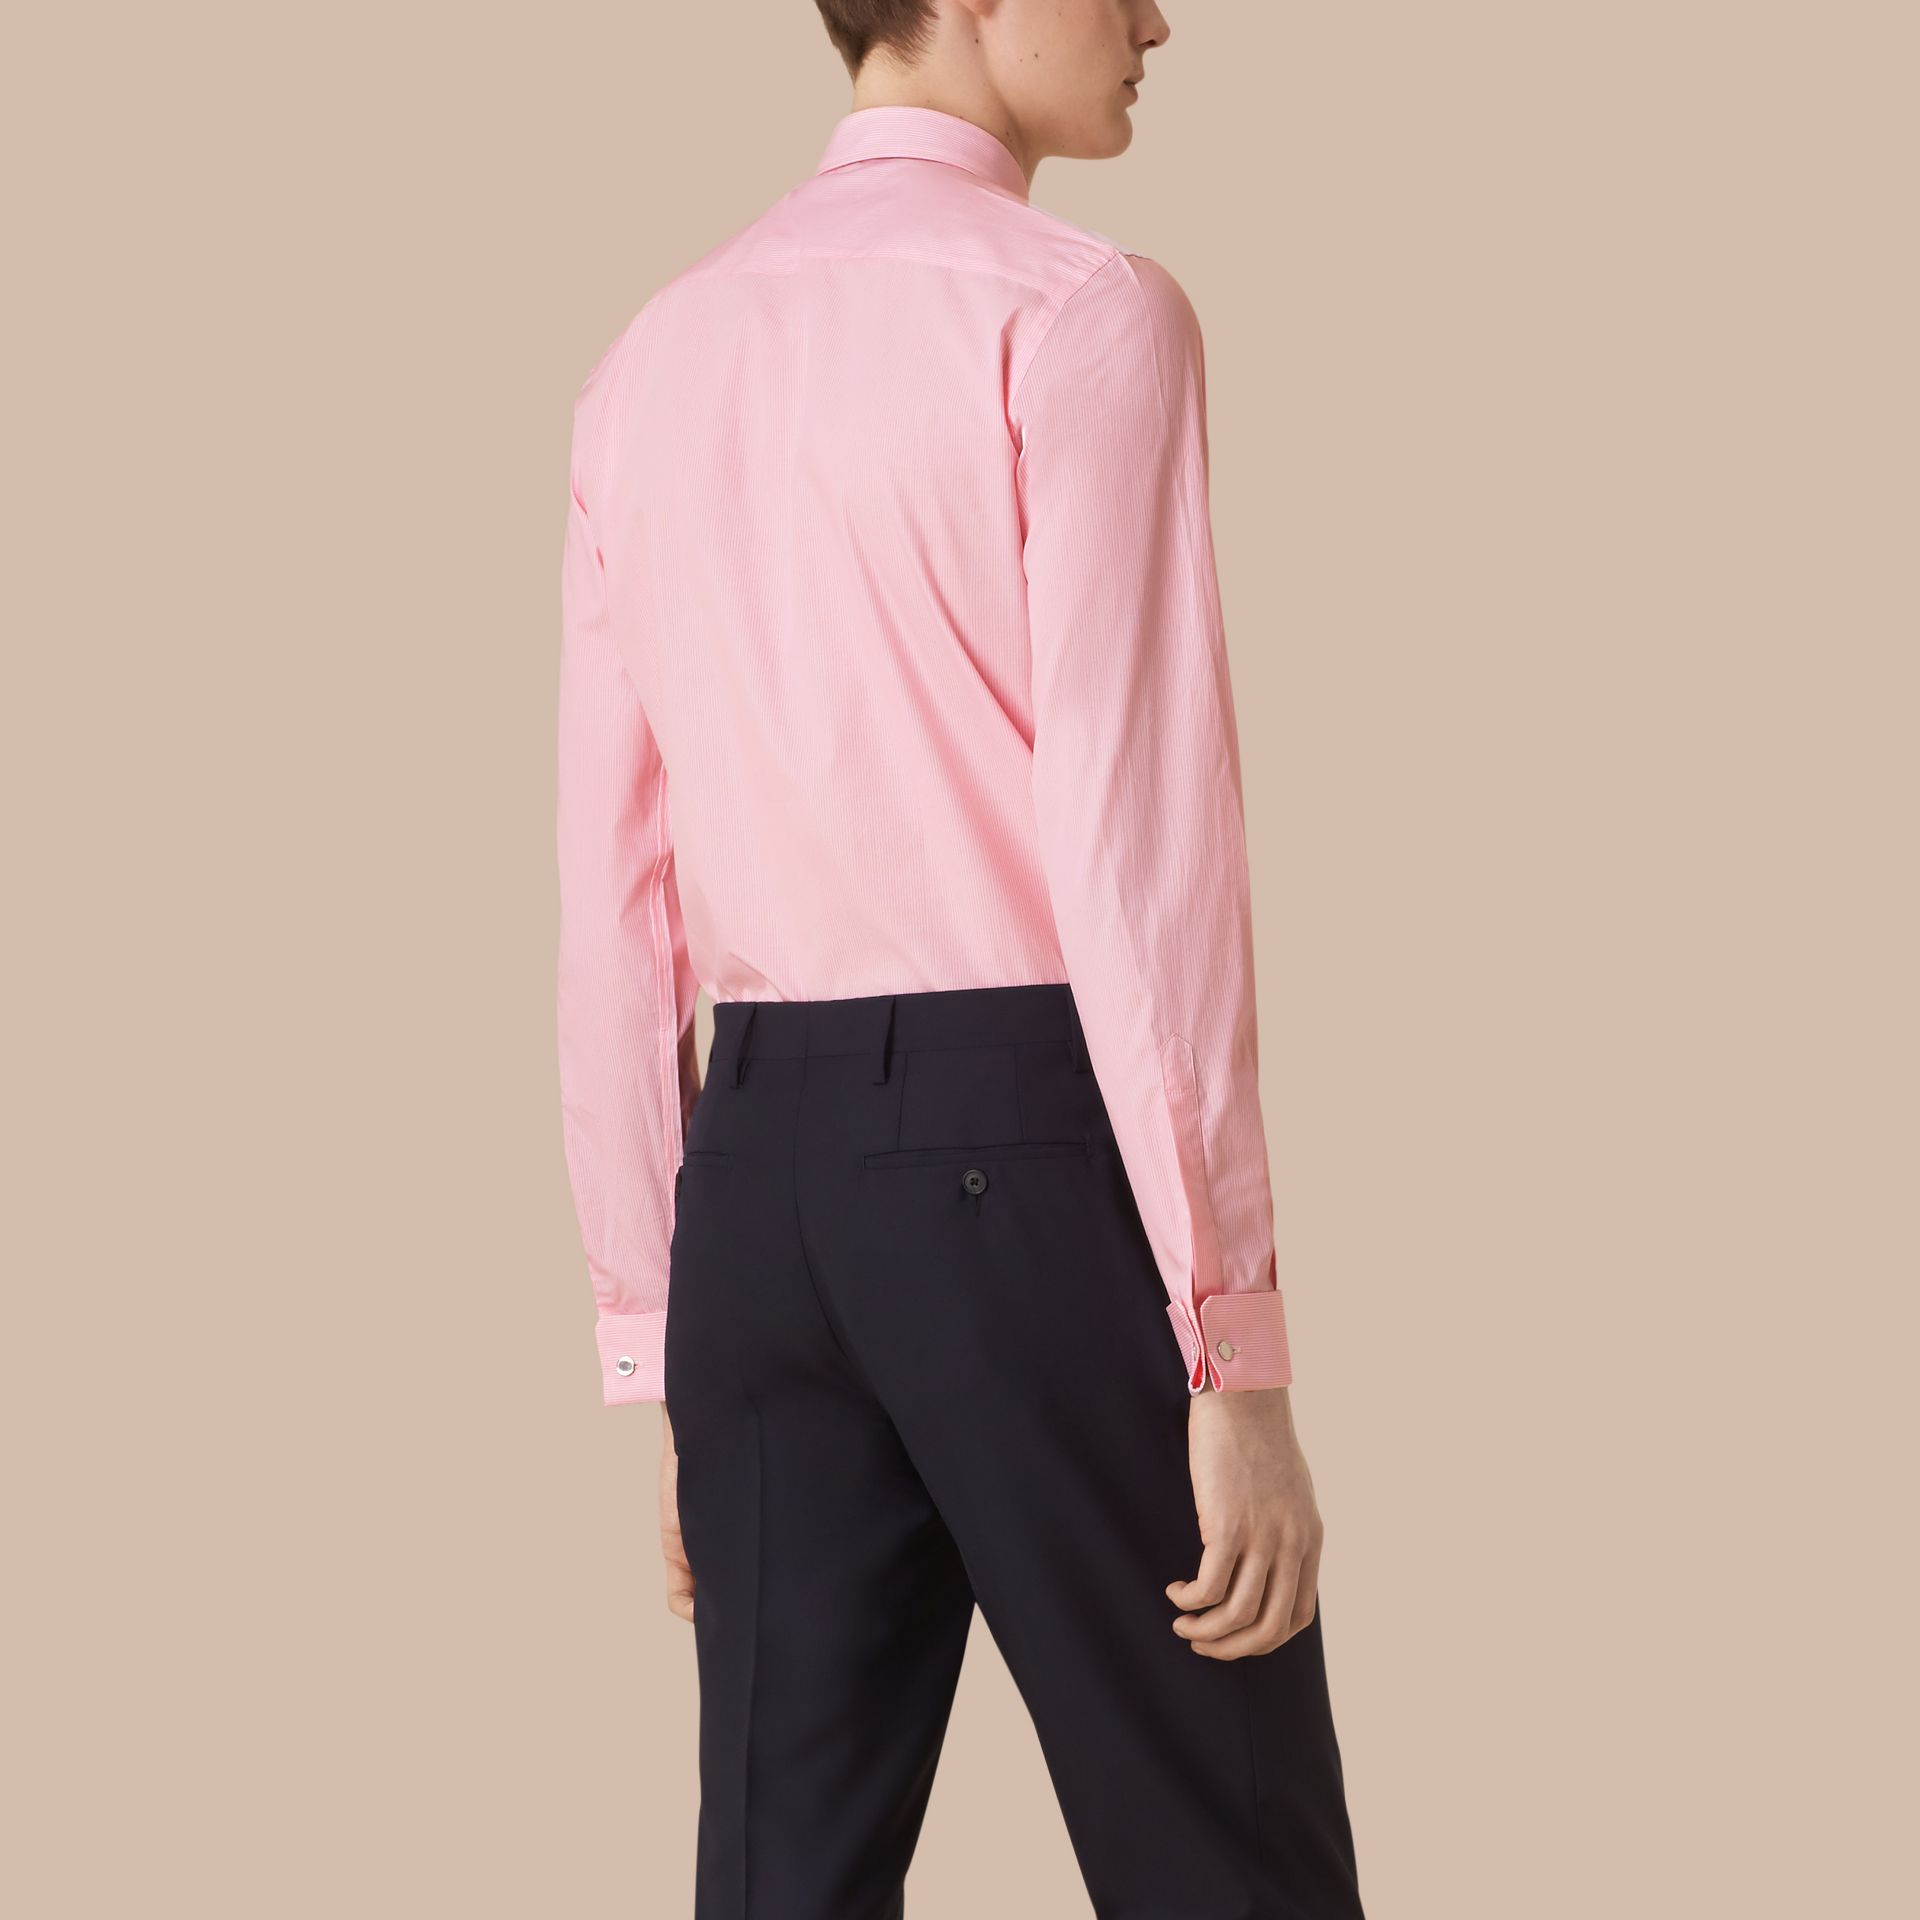 City pink Slim Fit Double-cuff Striped Cotton Poplin Shirt City Pink - gallery image 3